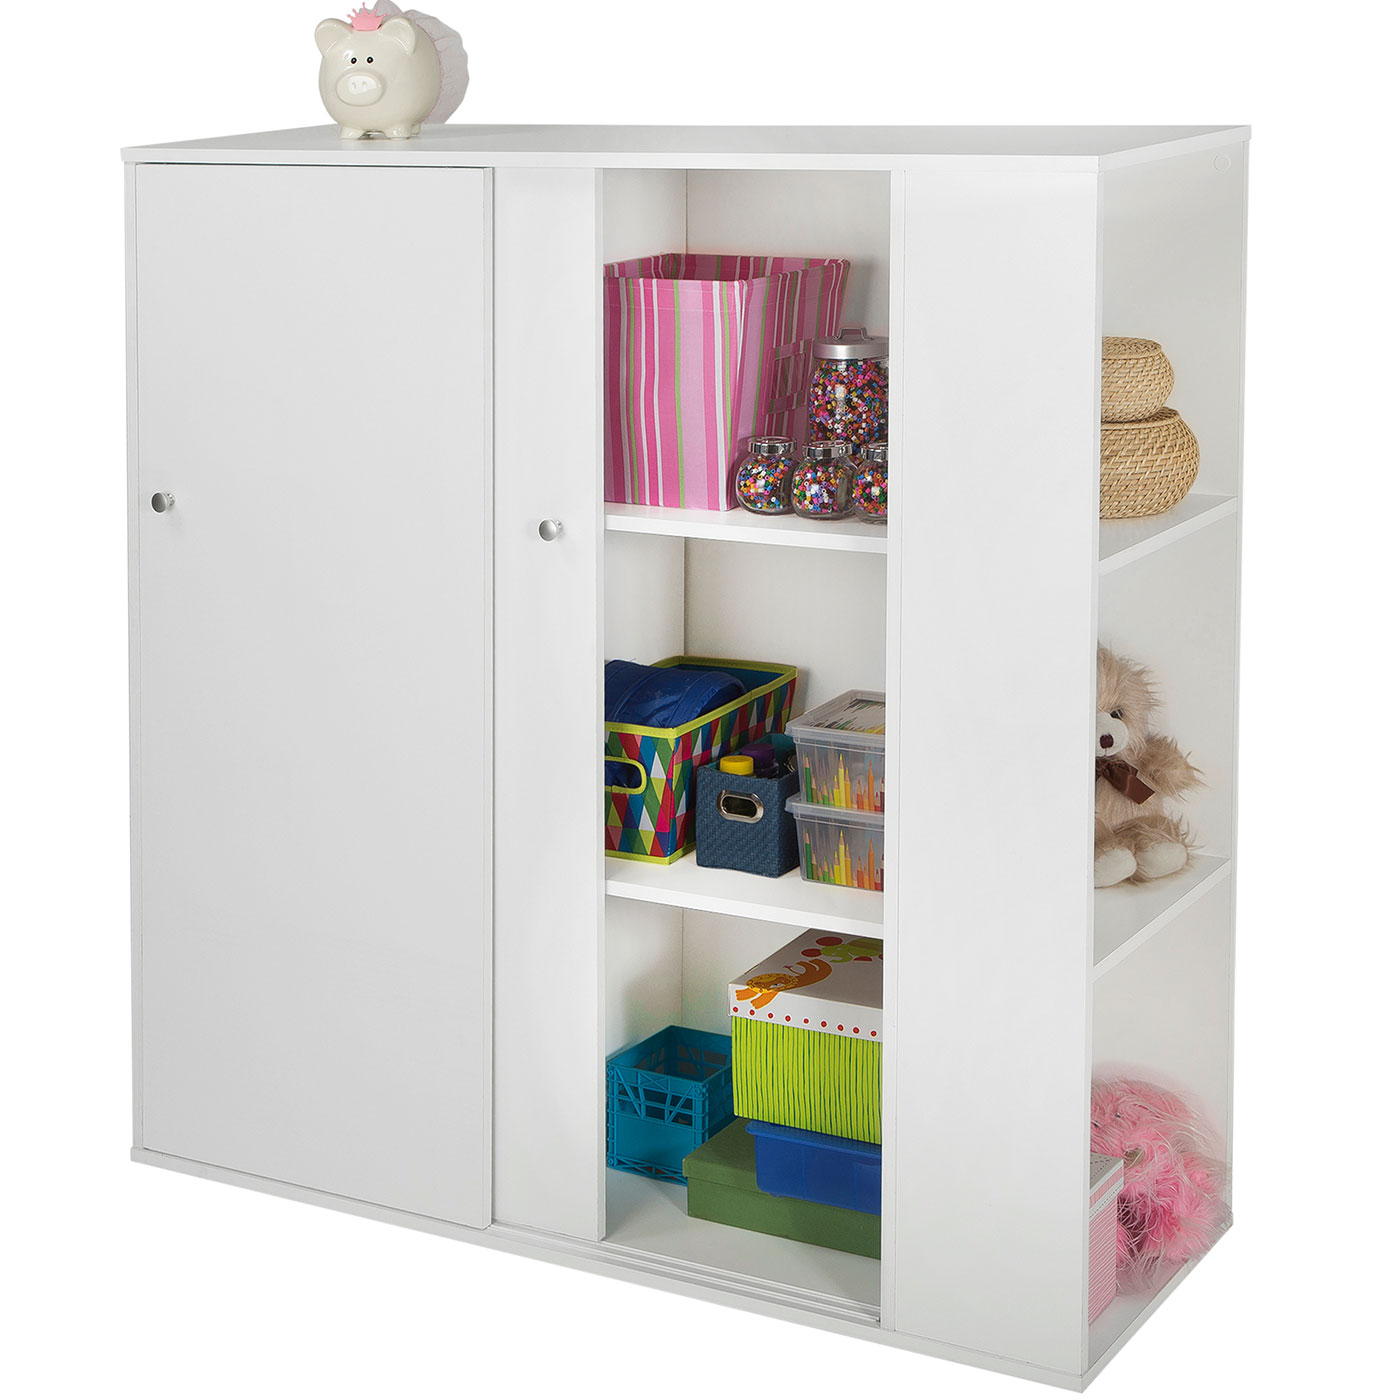 Southshore Storit Kids Storage Cabinet With Sliding Doors In Pure